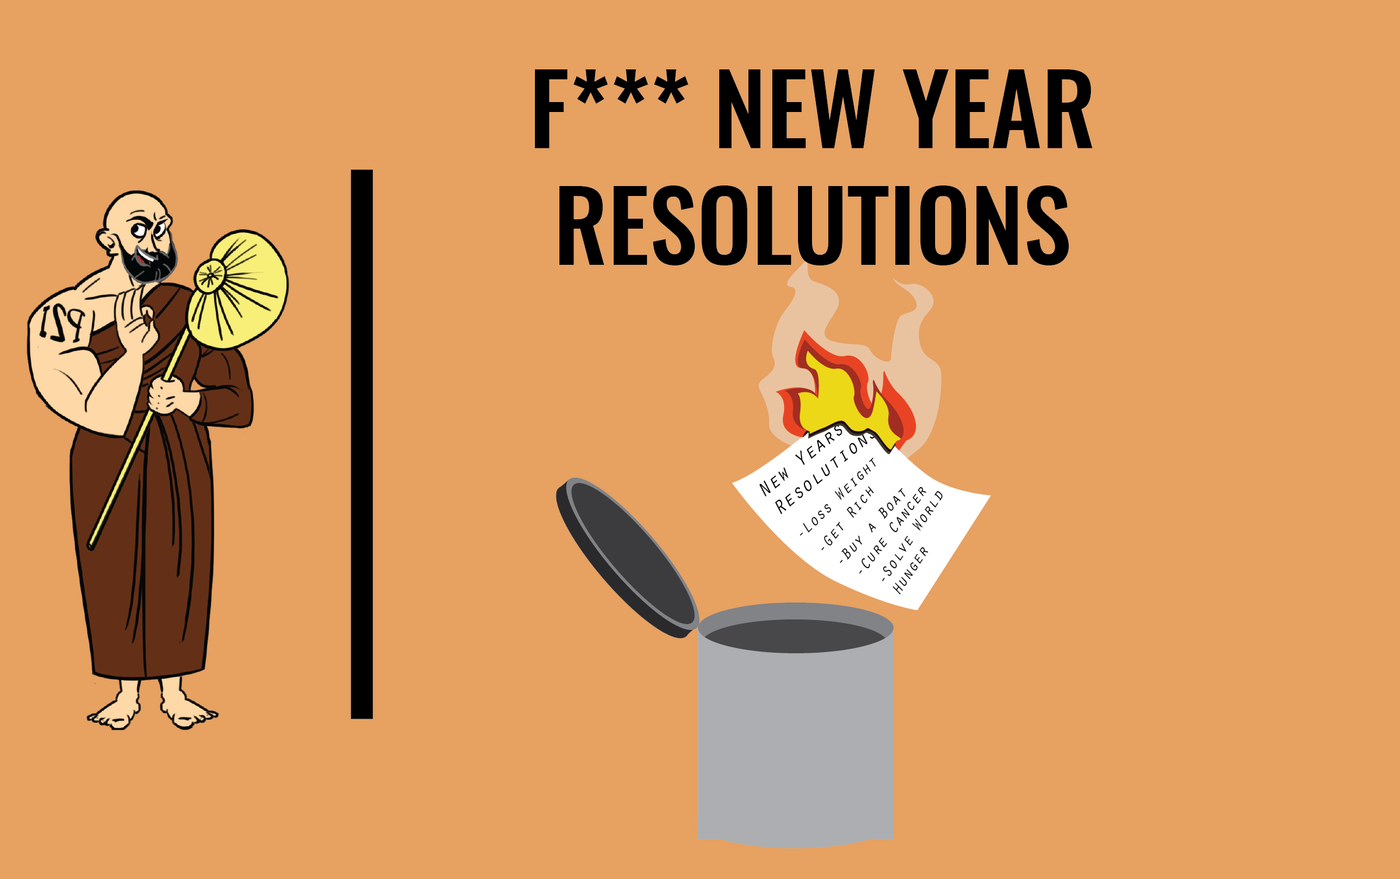 F*** NEW YEAR RESOLUTIONS